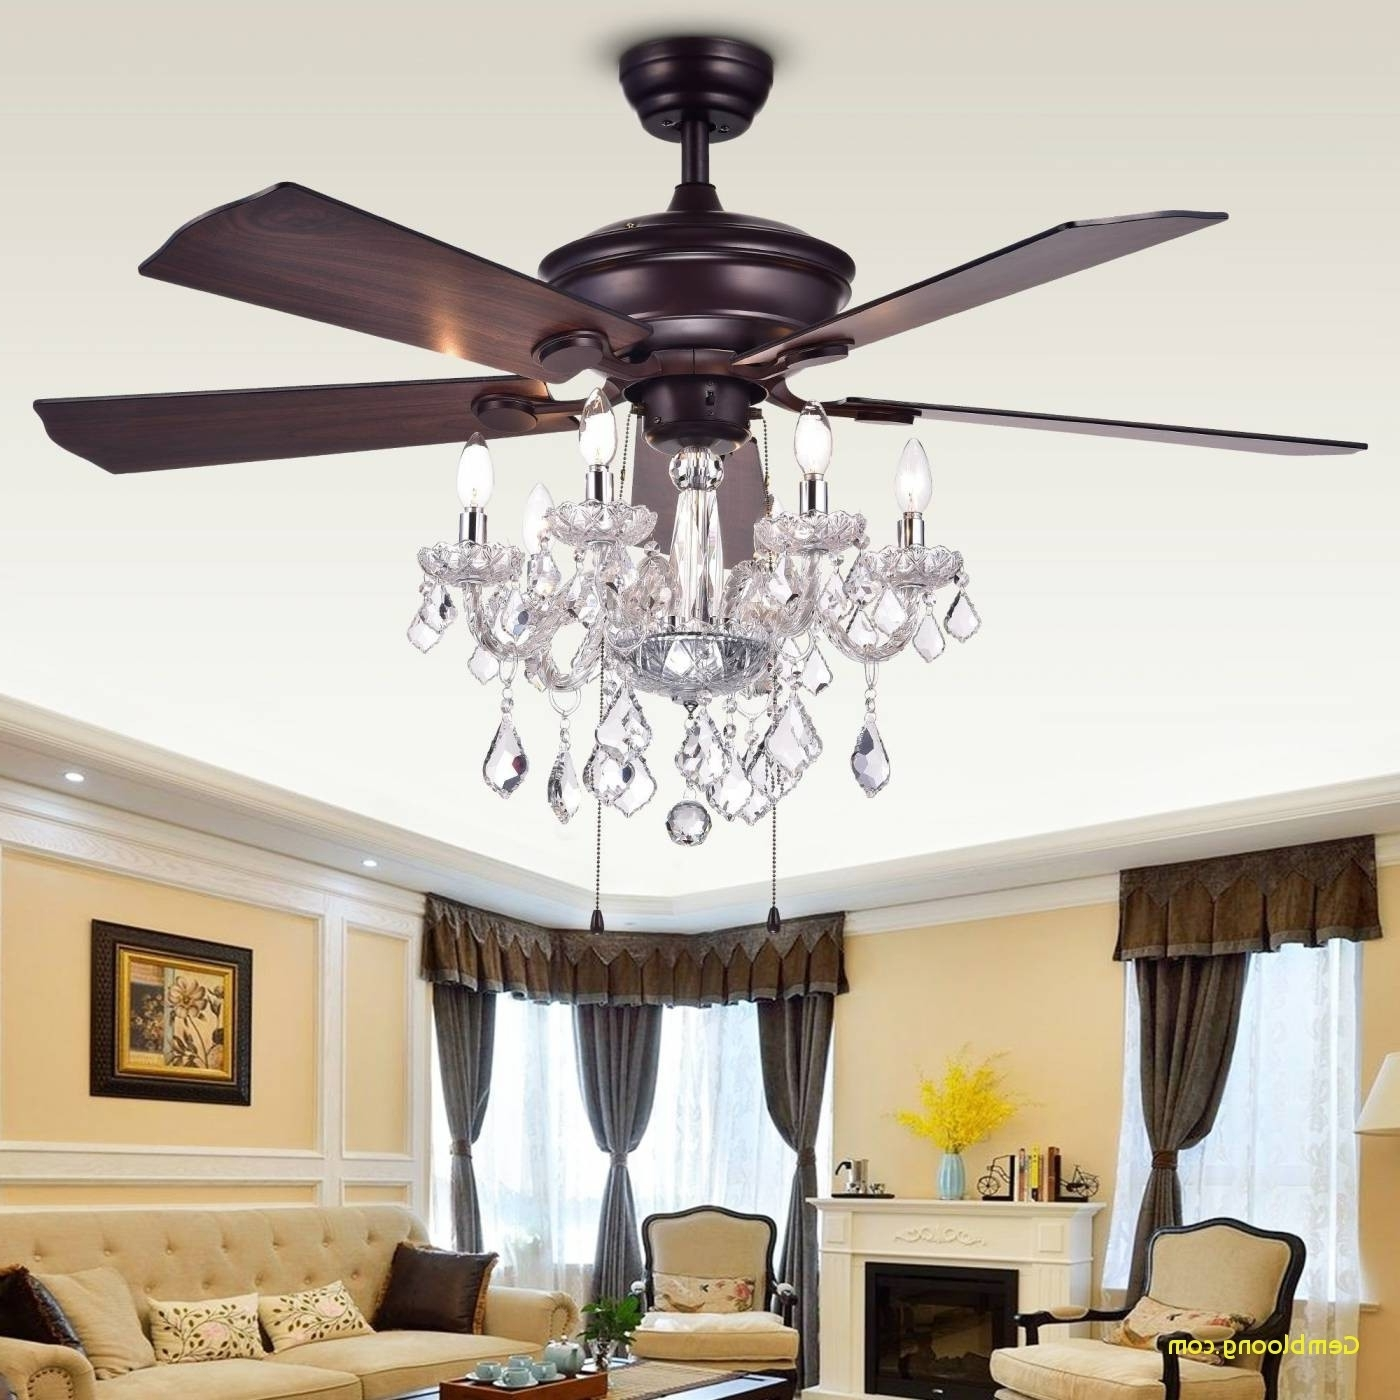 Famous Casa Vieja Ceiling Fans Elegant 40 New Chandelier Ceiling Fan Pertaining To Casa Vieja Outdoor Ceiling Fans (View 18 of 20)